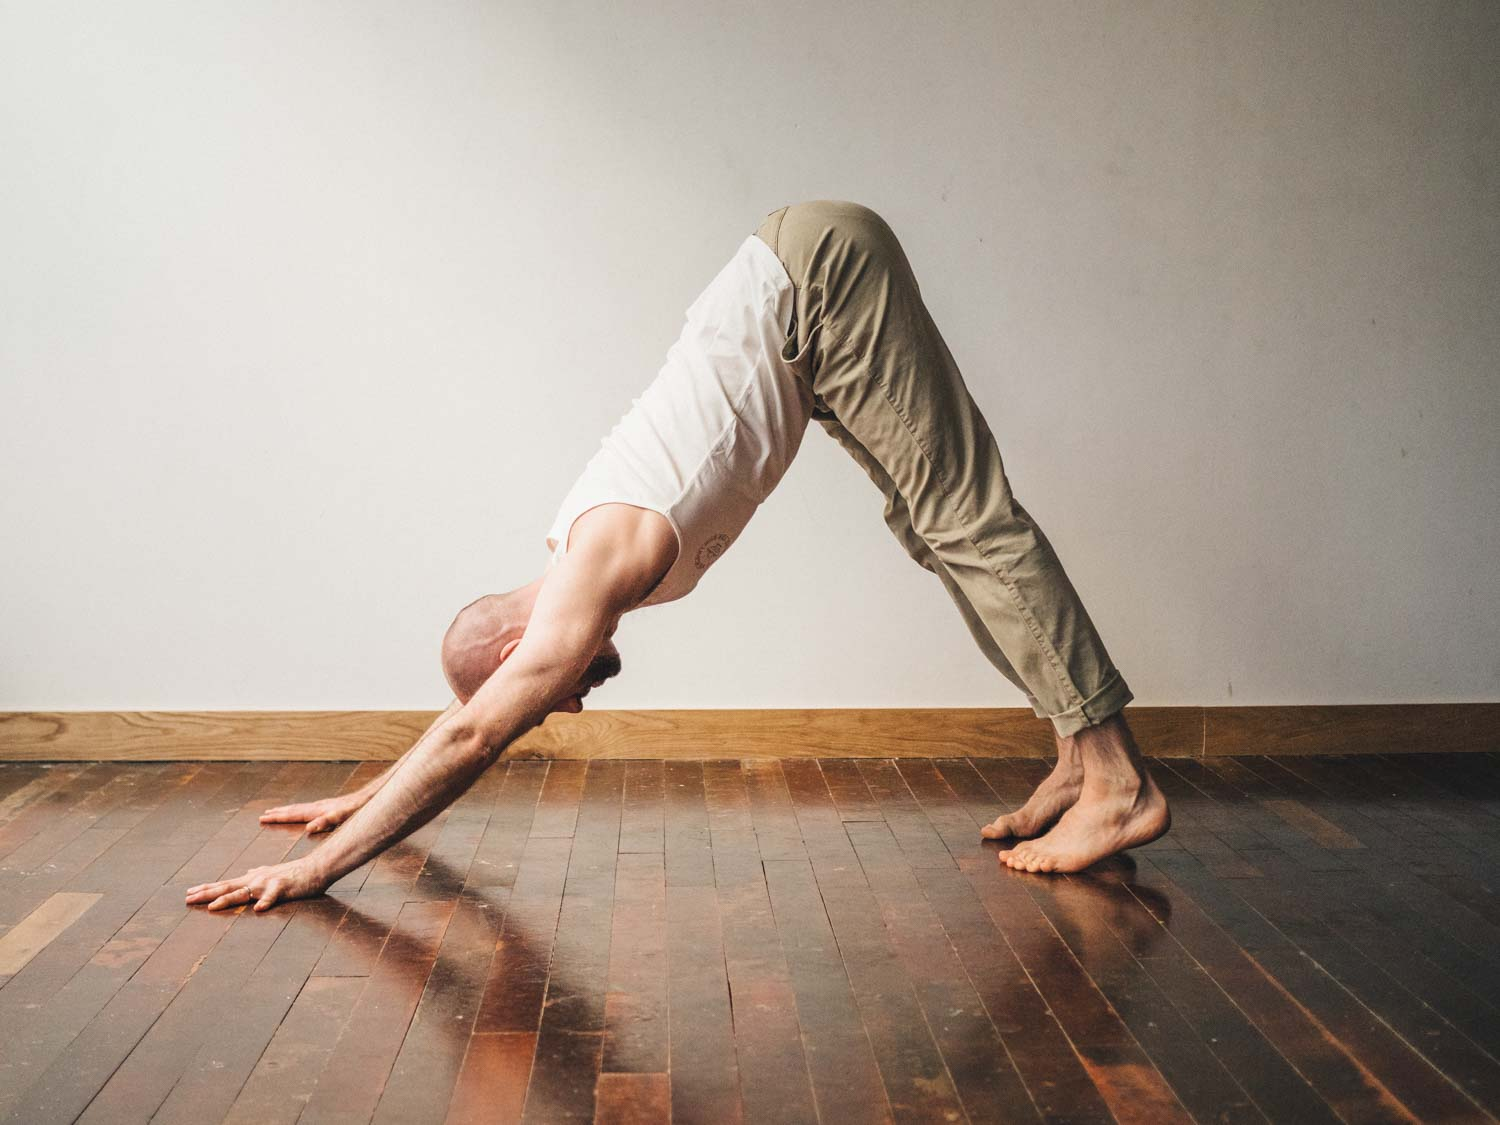 Man doing Adho Mukha Svanasana or downward dog yoga pose